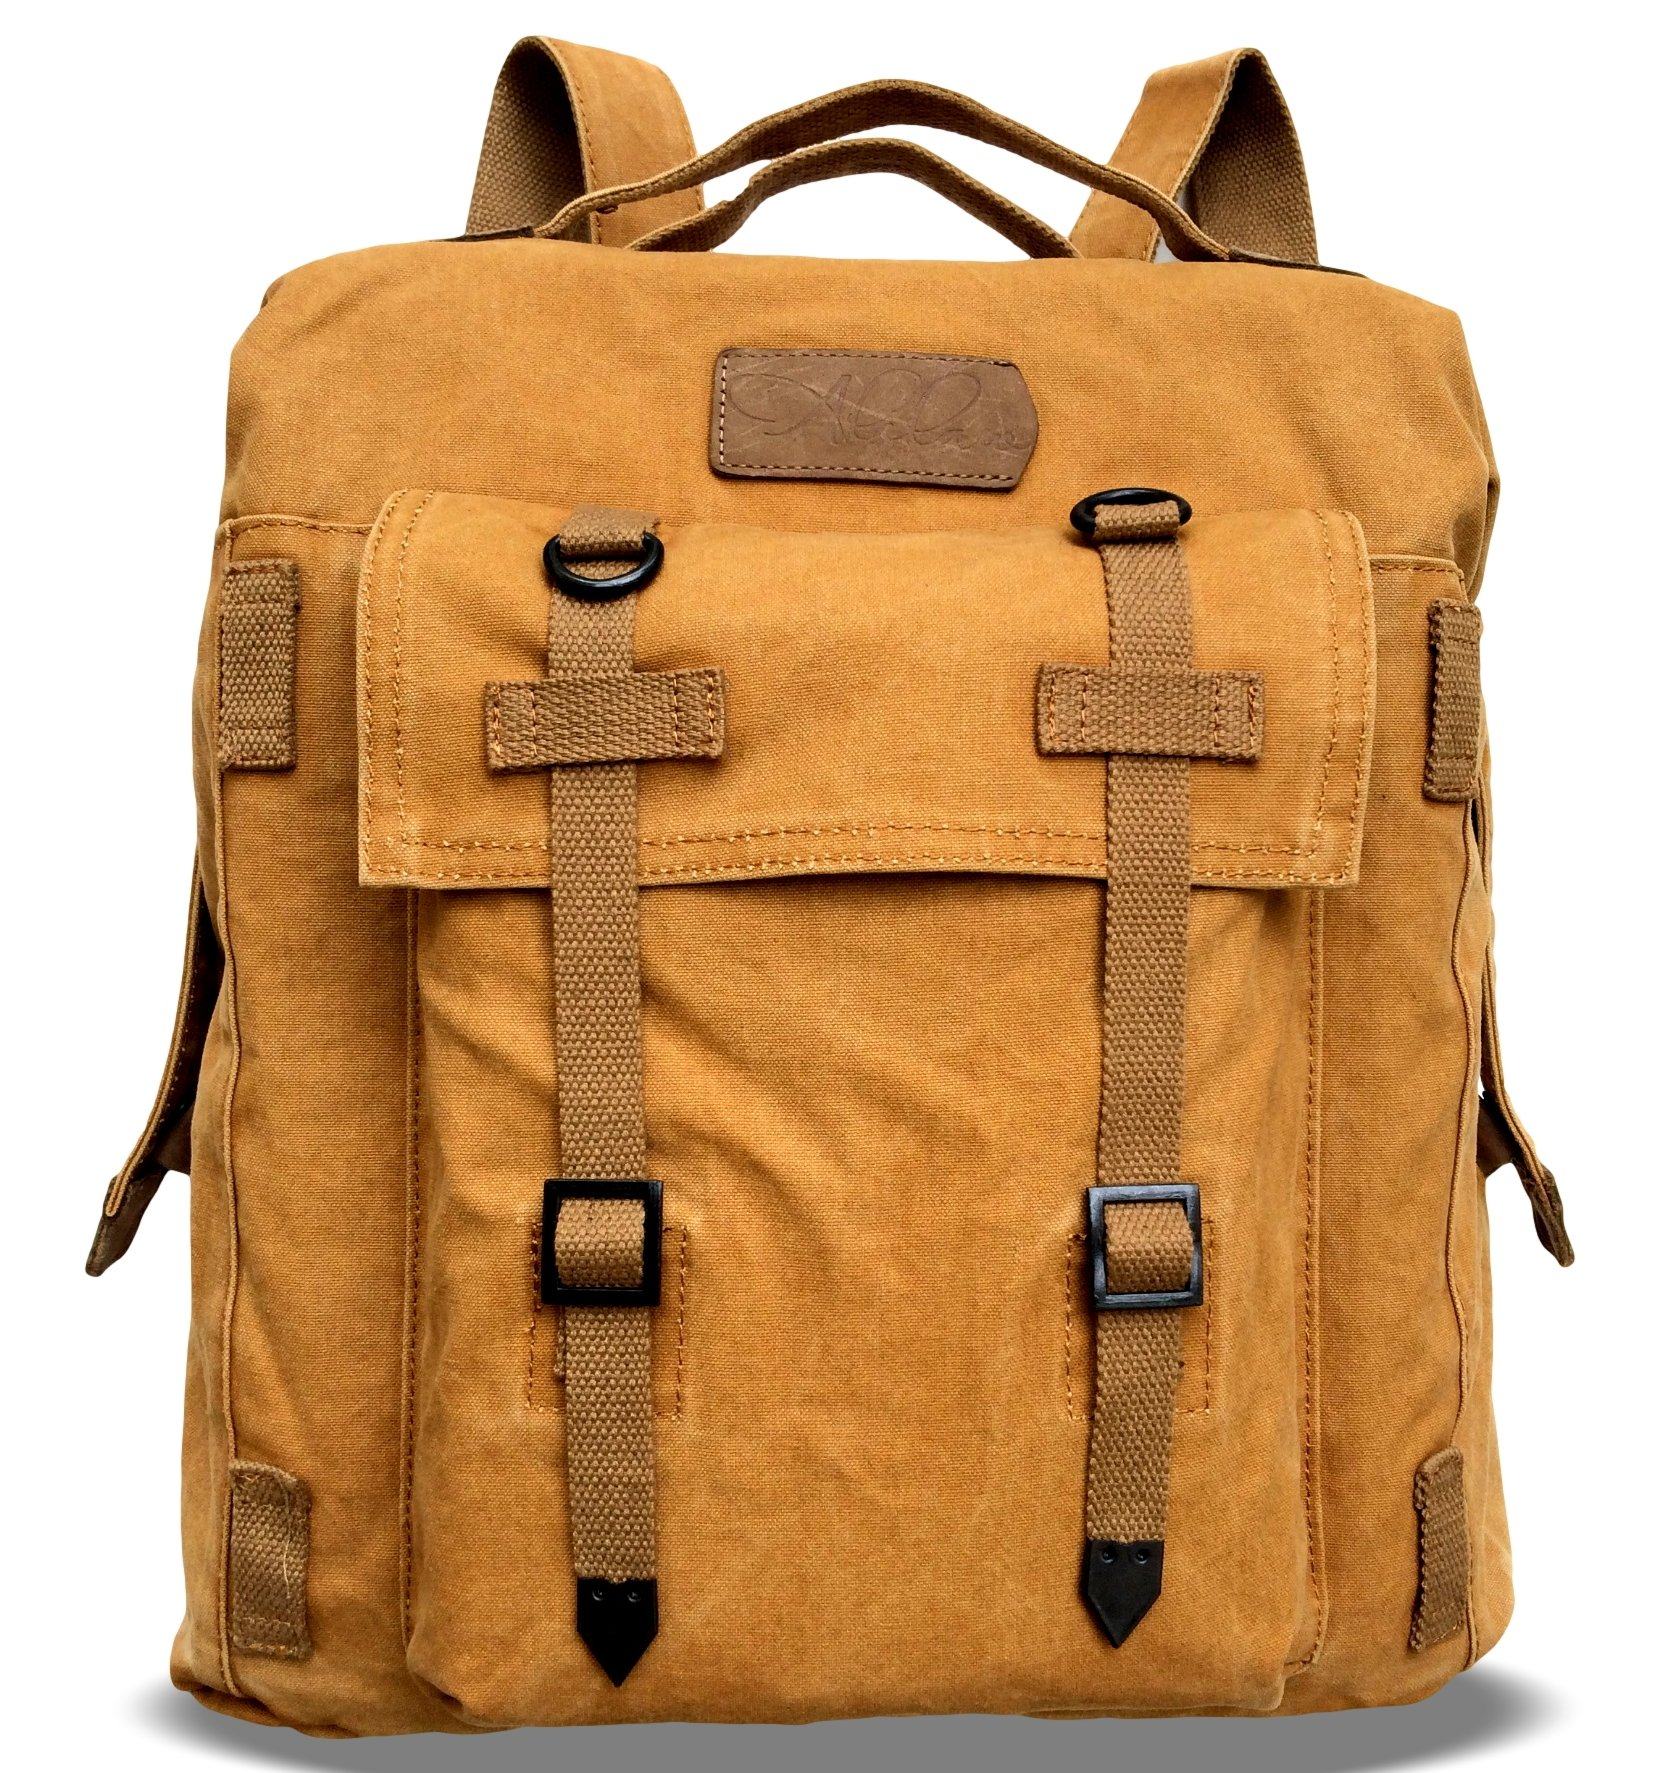 Alilaw Heavy Duty Canvas Backpack / Rucksack, Dual Use, Vintage Style, 16 Inch, Brown, Unisex